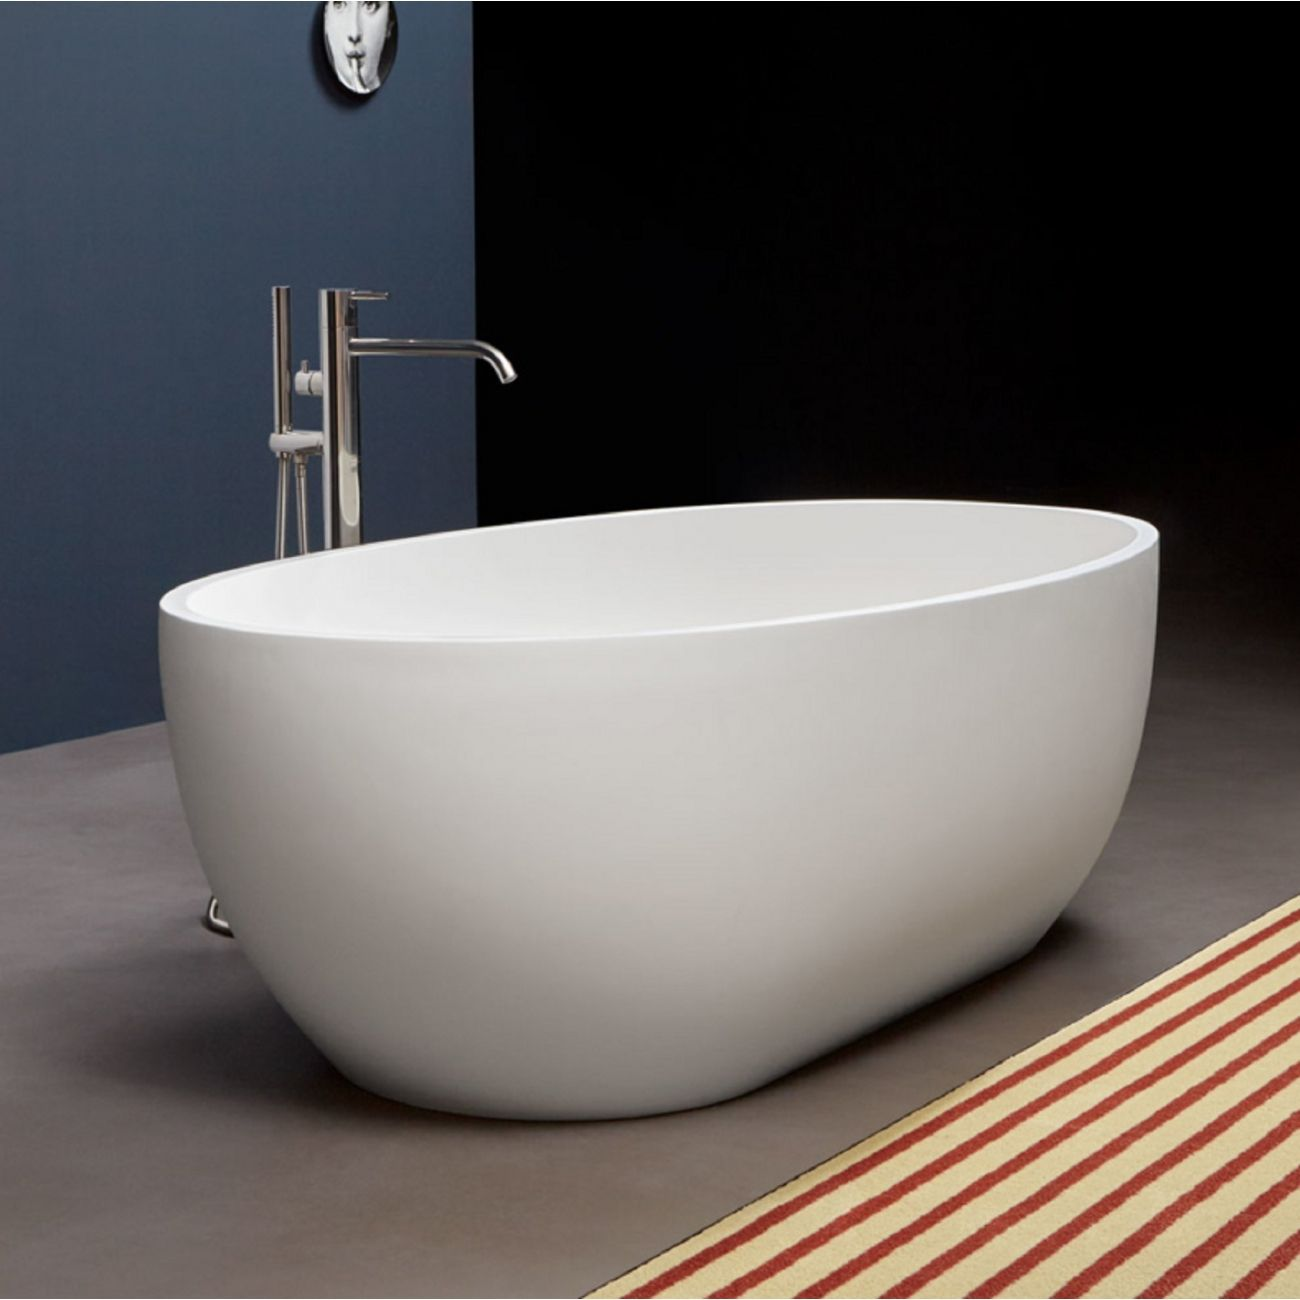 Antonio Lupi Reflex Flumood Bathtub Tattahome Bathtub Bathtub Walls Acrylic Bathtub